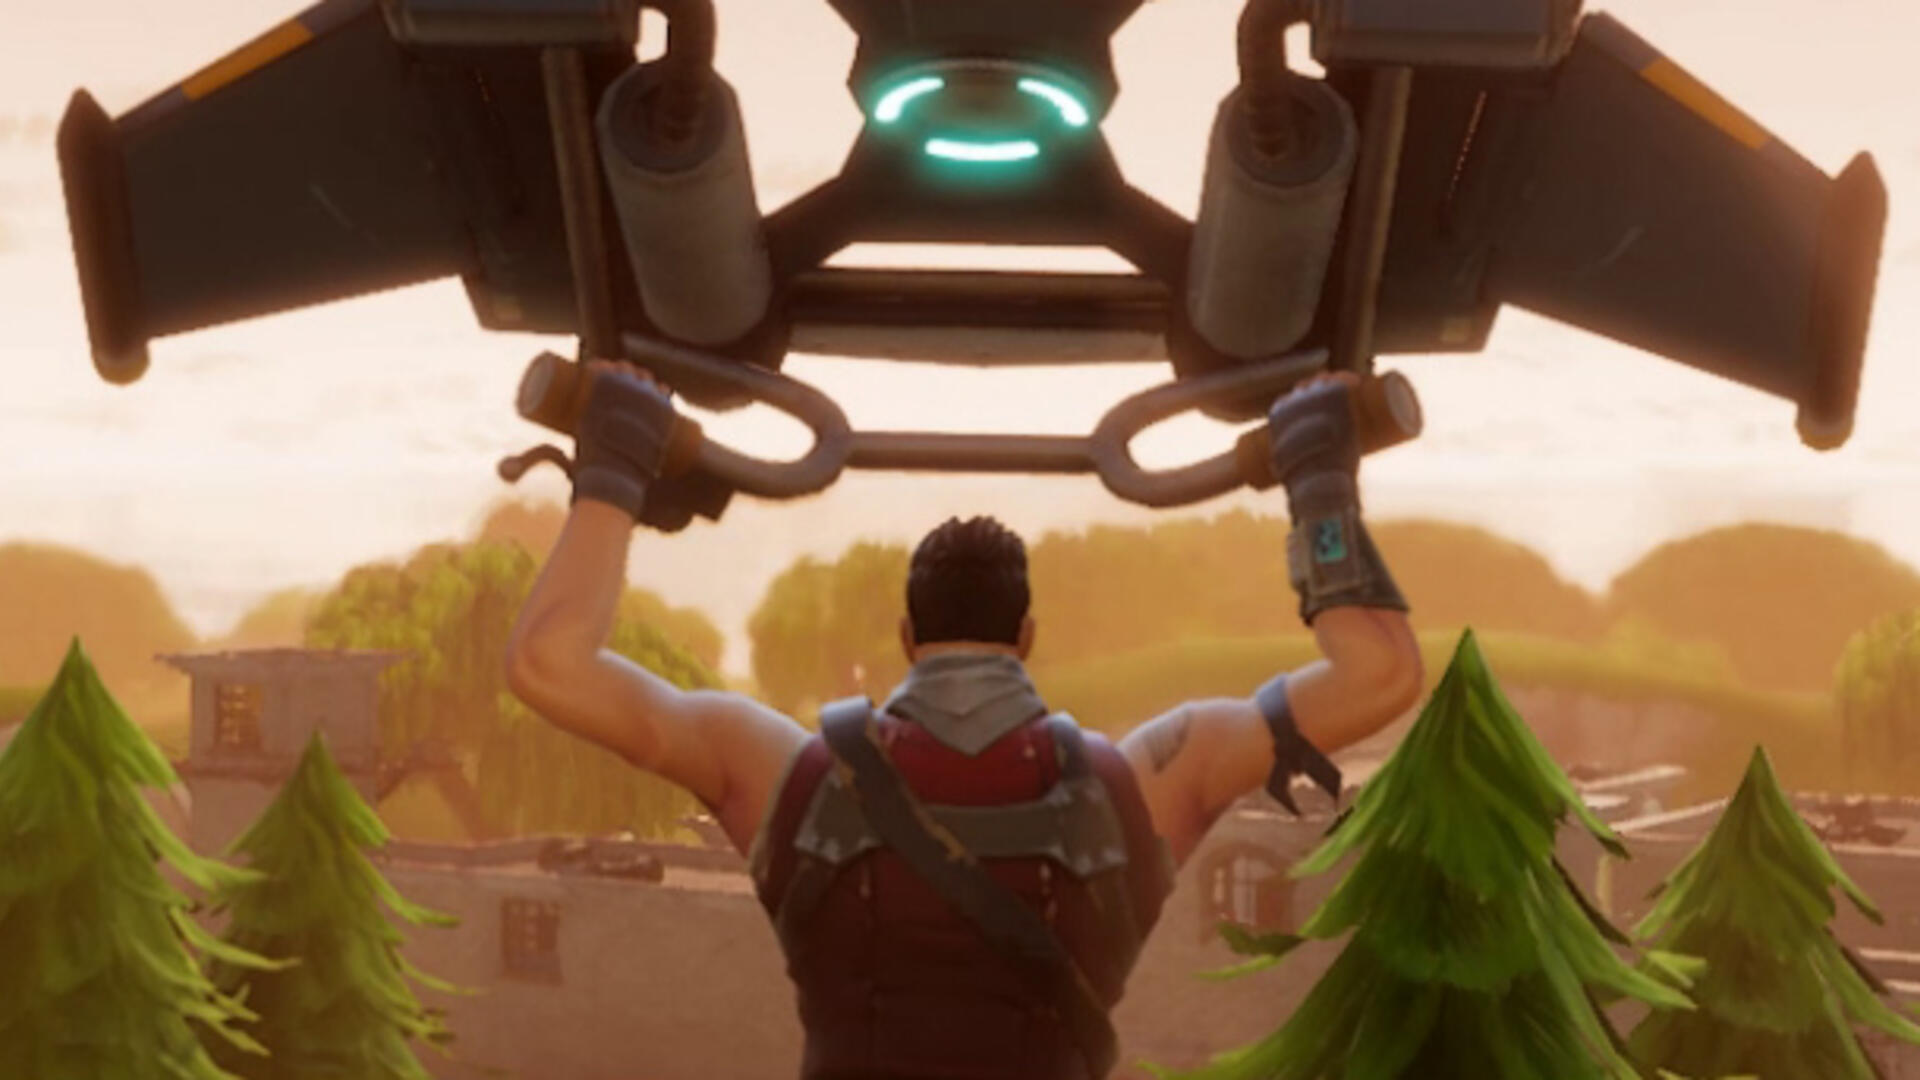 Fortnite Week 7 Challenges not Working for Some Players [UPDATED]